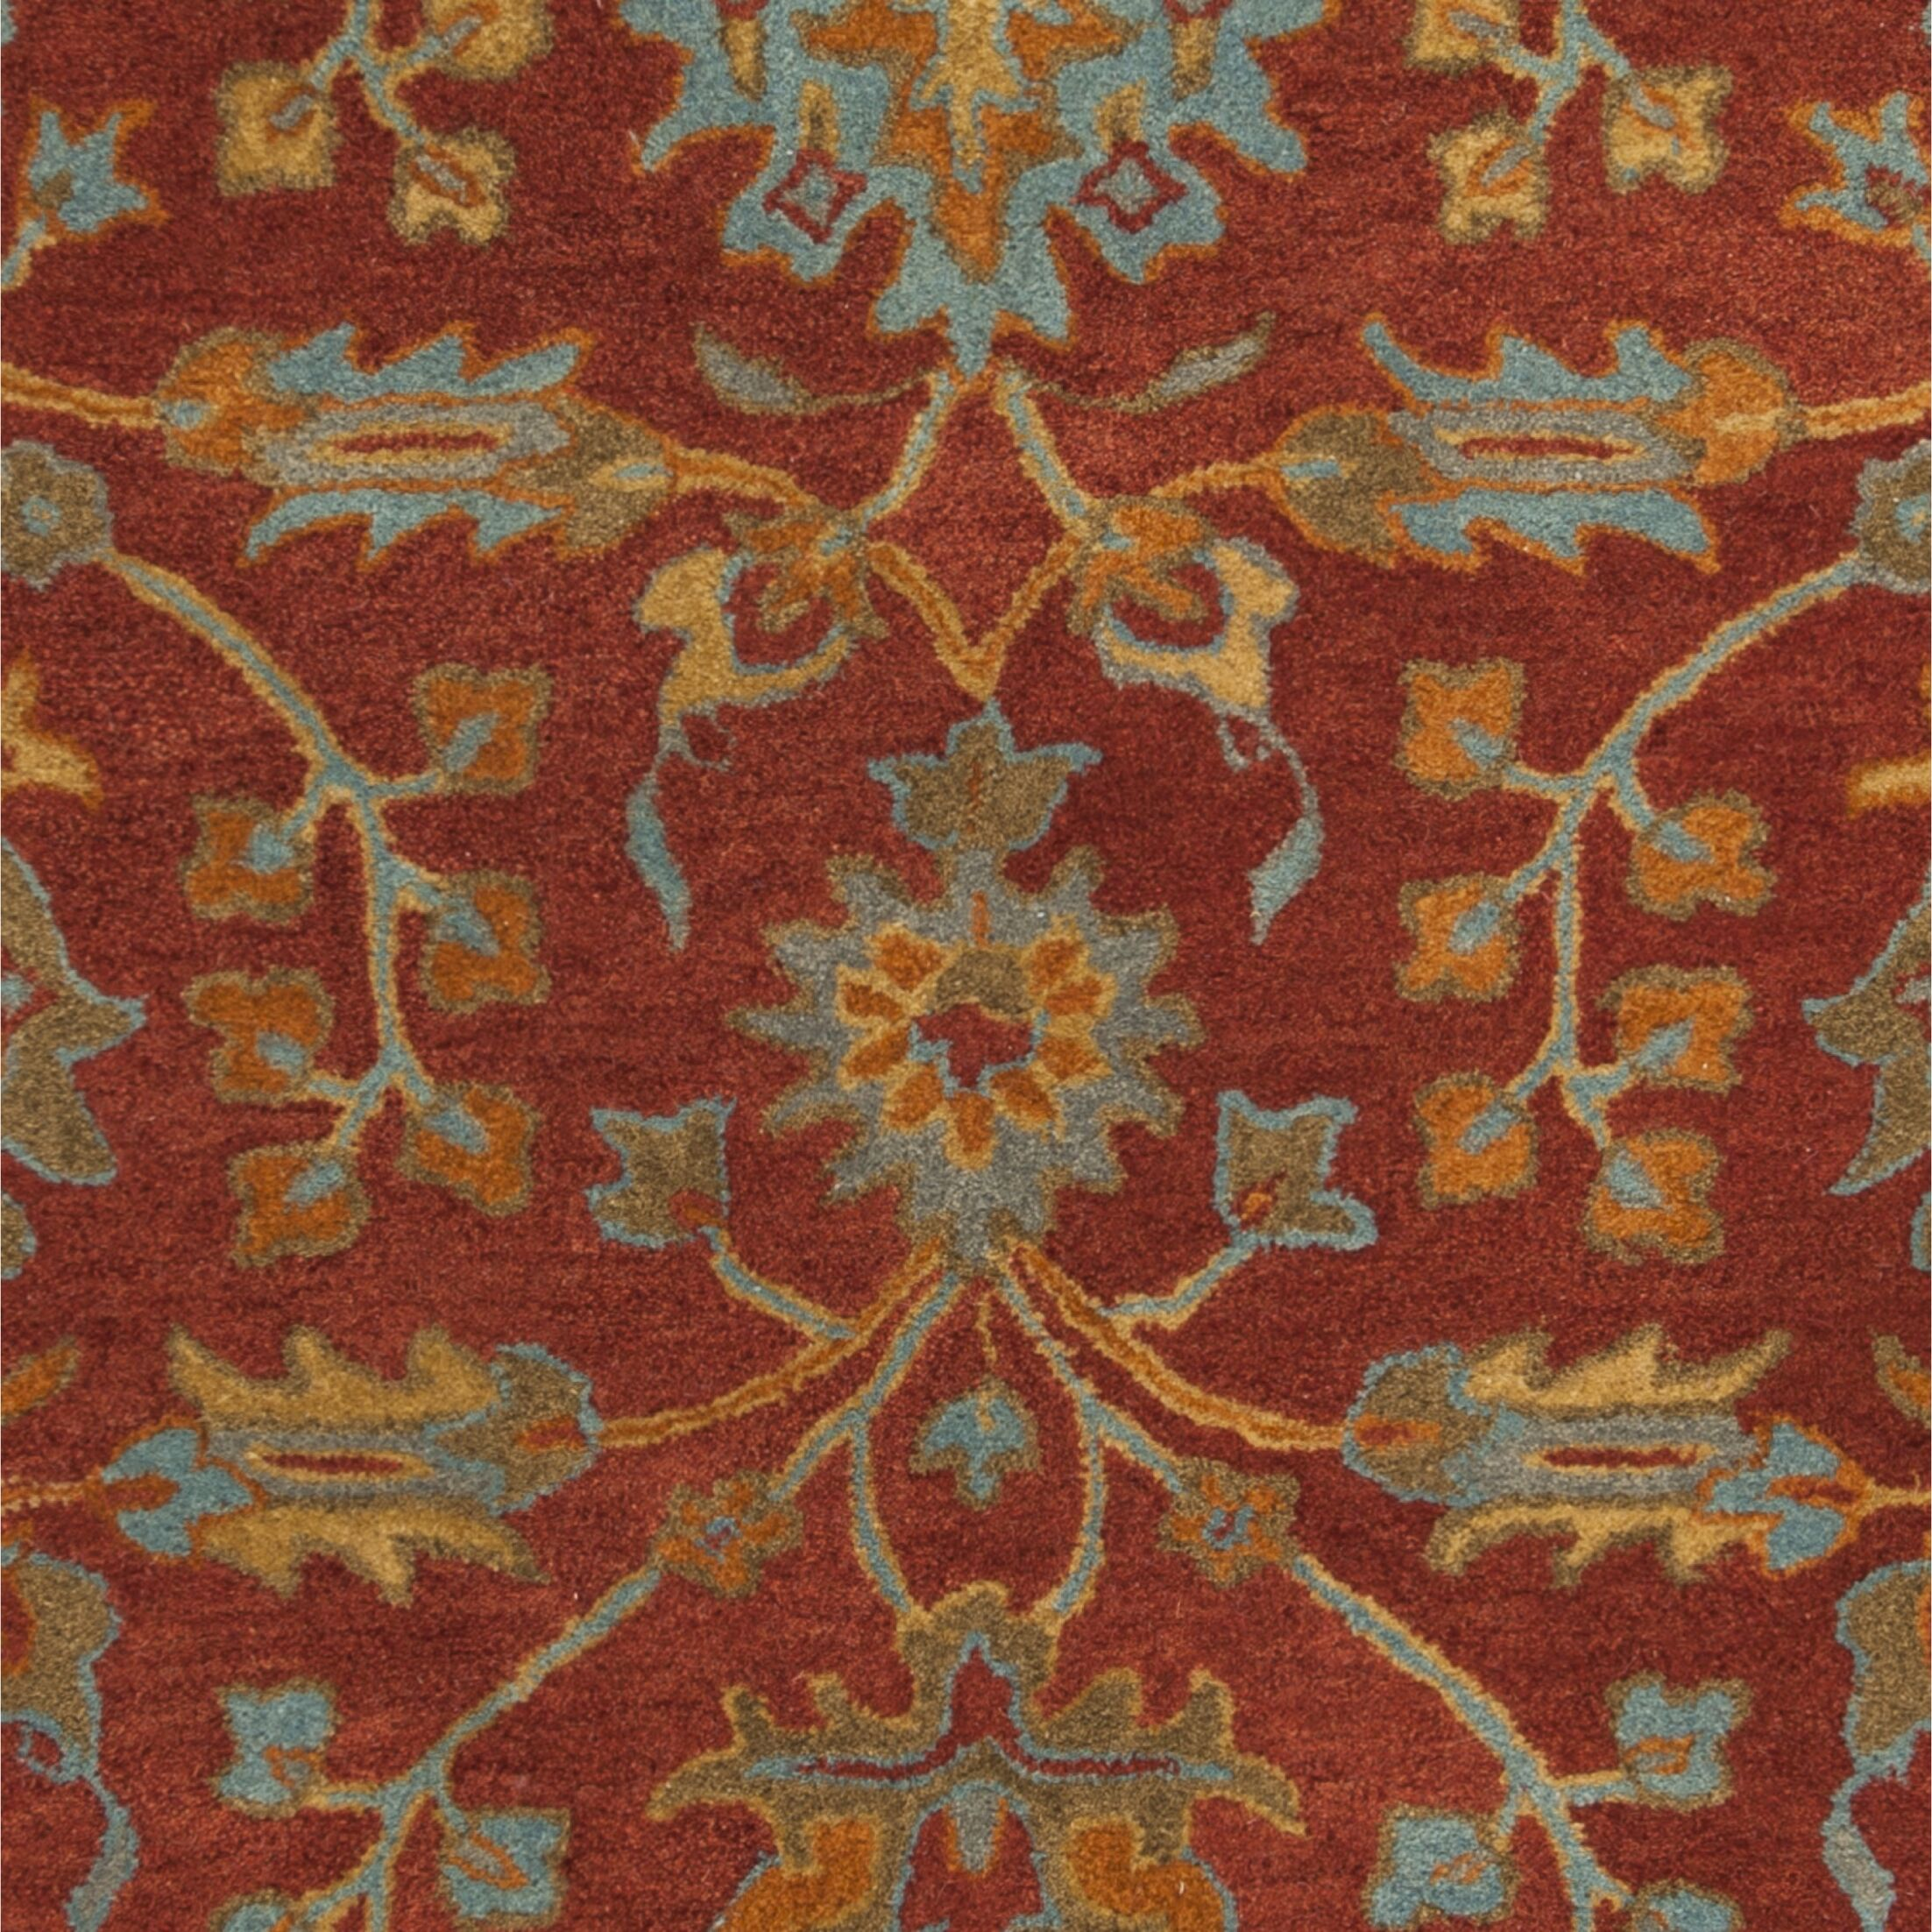 Carlsen Hand Tufted Wool Red Area Rug Rug Size: Rectangle 8' x 10'